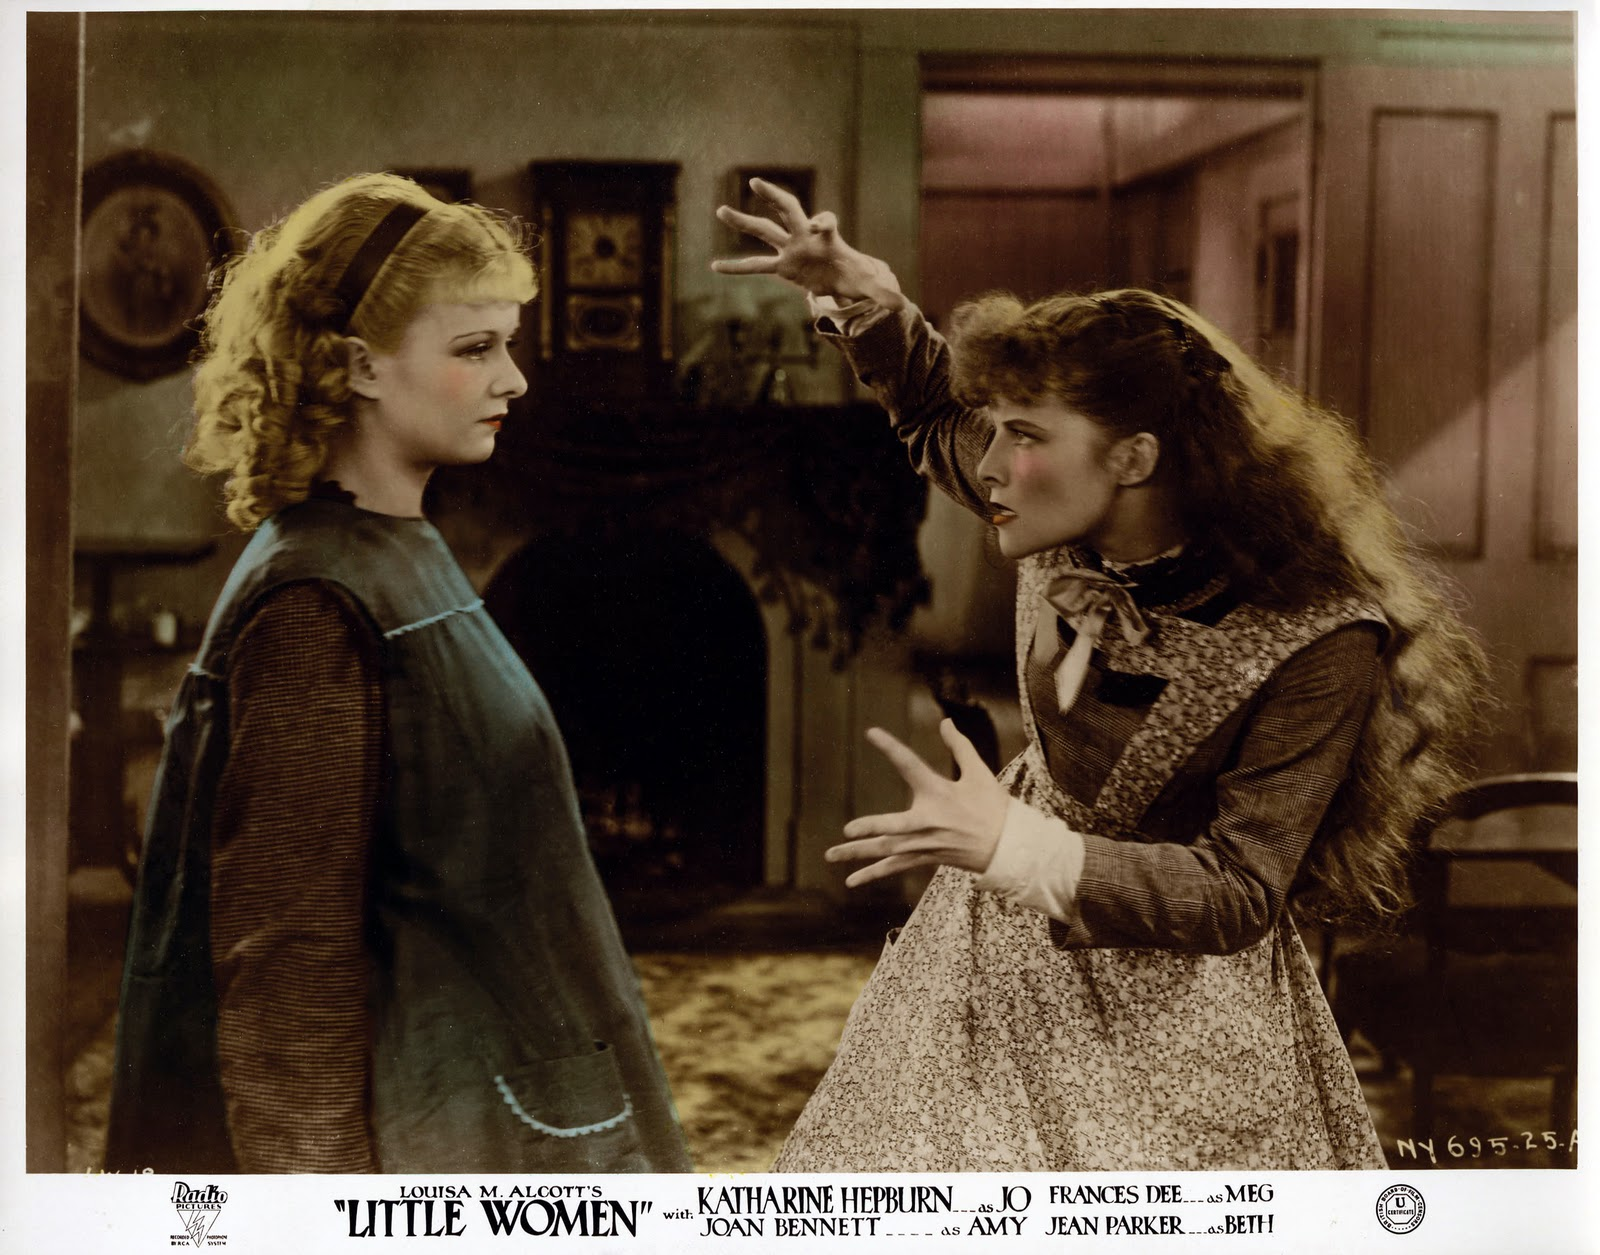 Little Women (1933 film) - Wikipedia